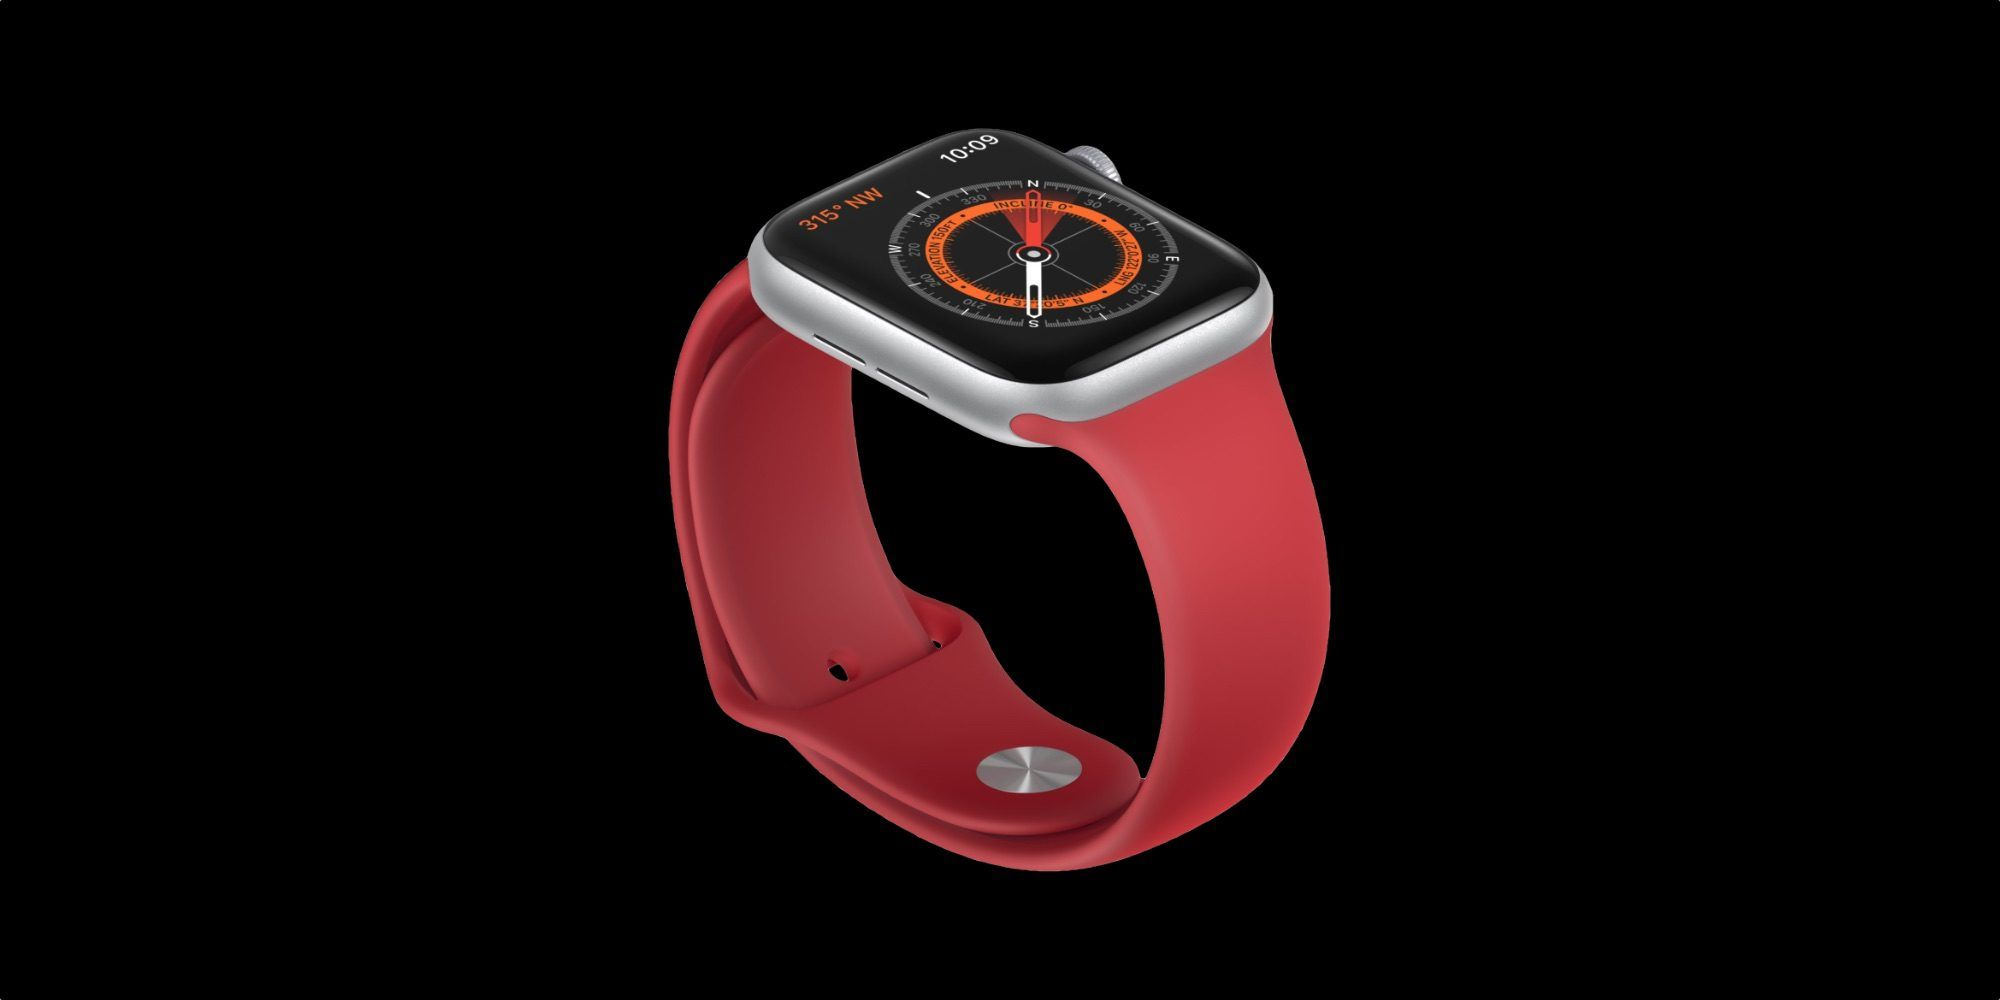 Apple Watch Series 5 bands may cause compass interference